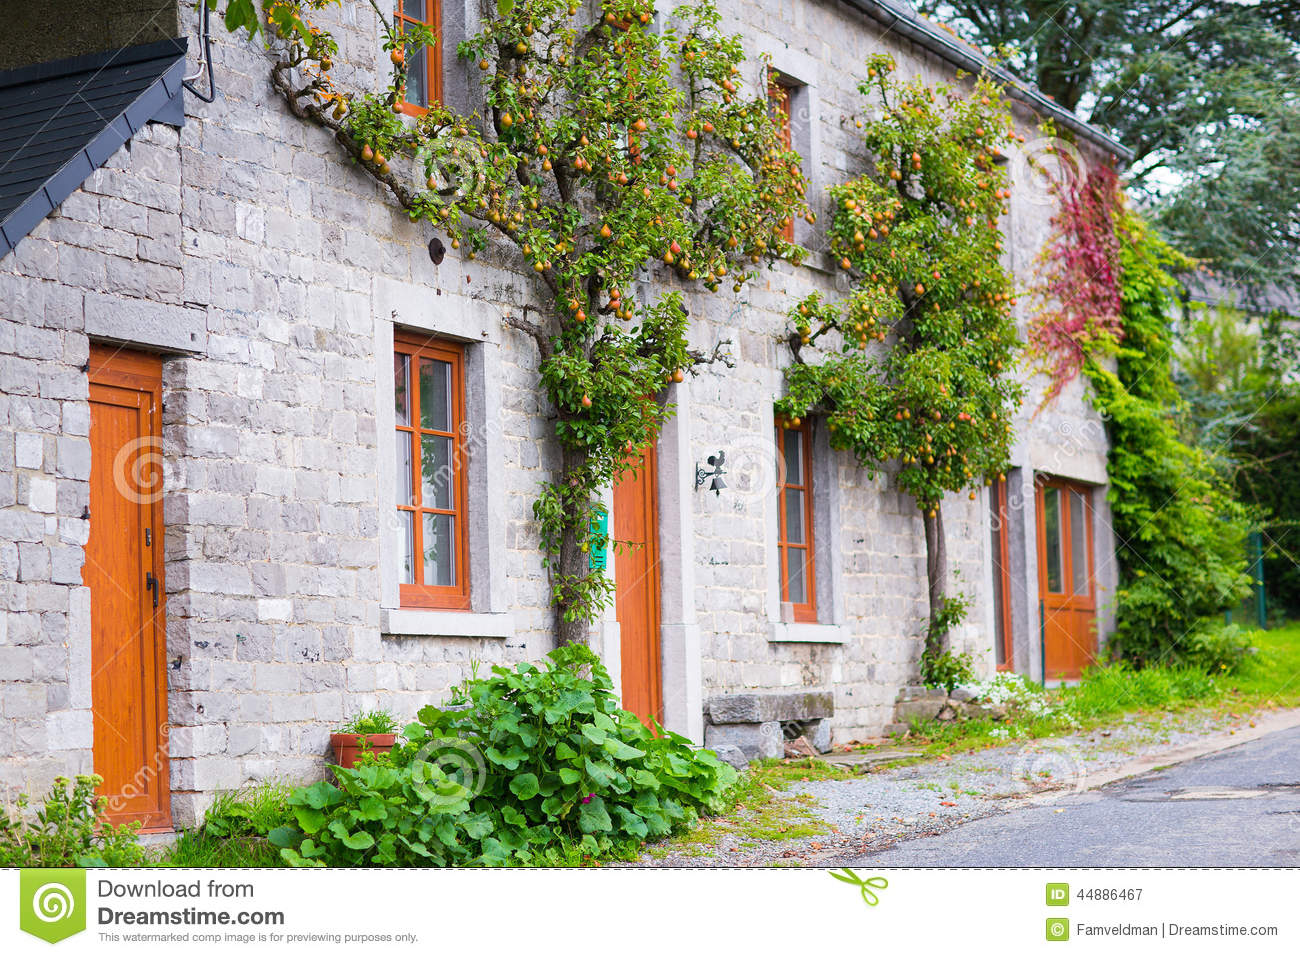 Country house france royalty free stock image for Country house online